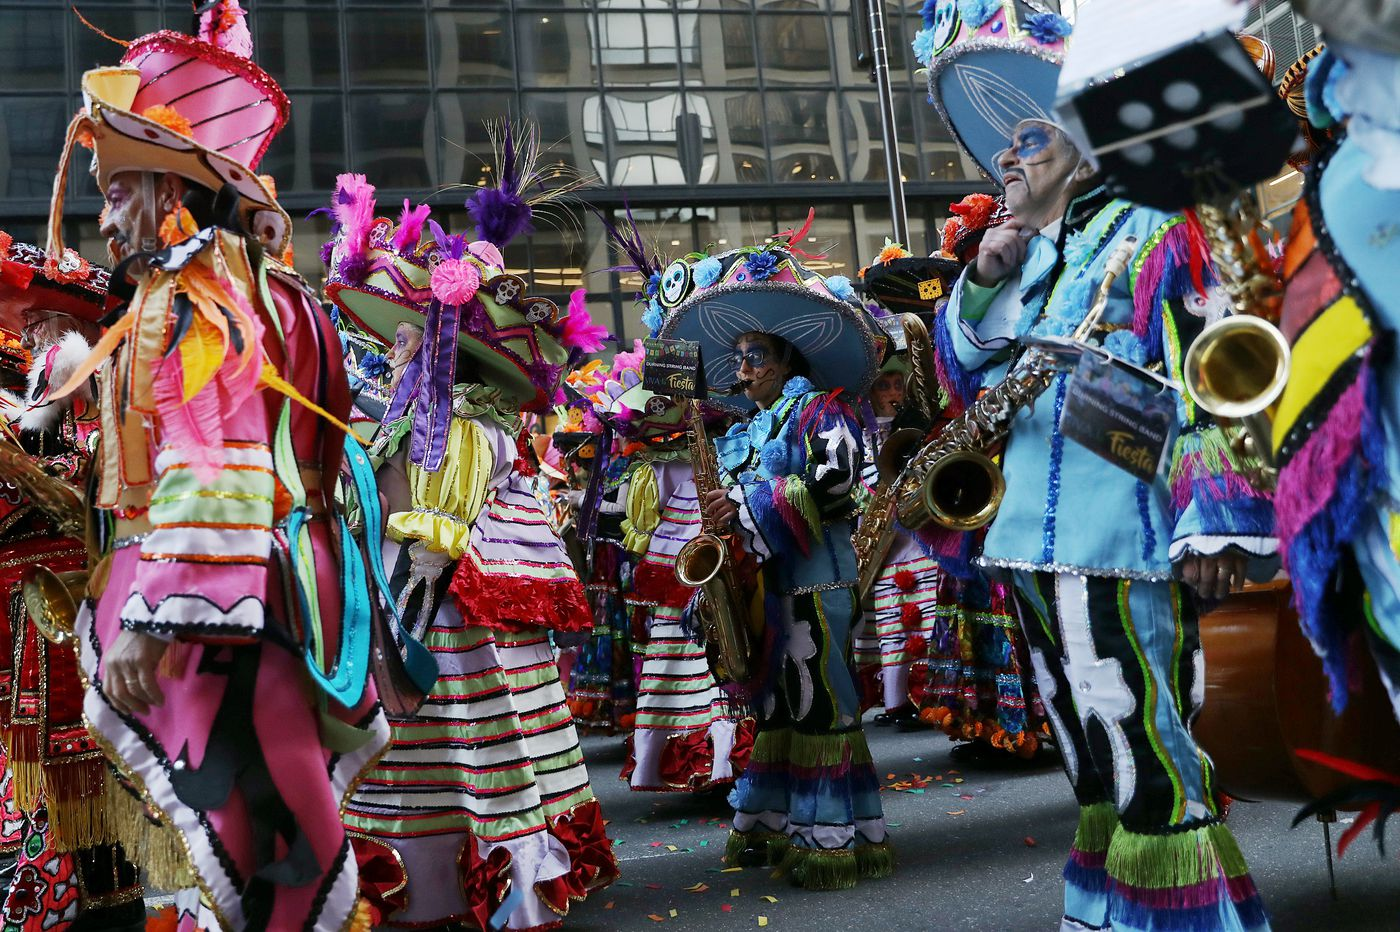 The Mummers parade is redeemable | Opinion